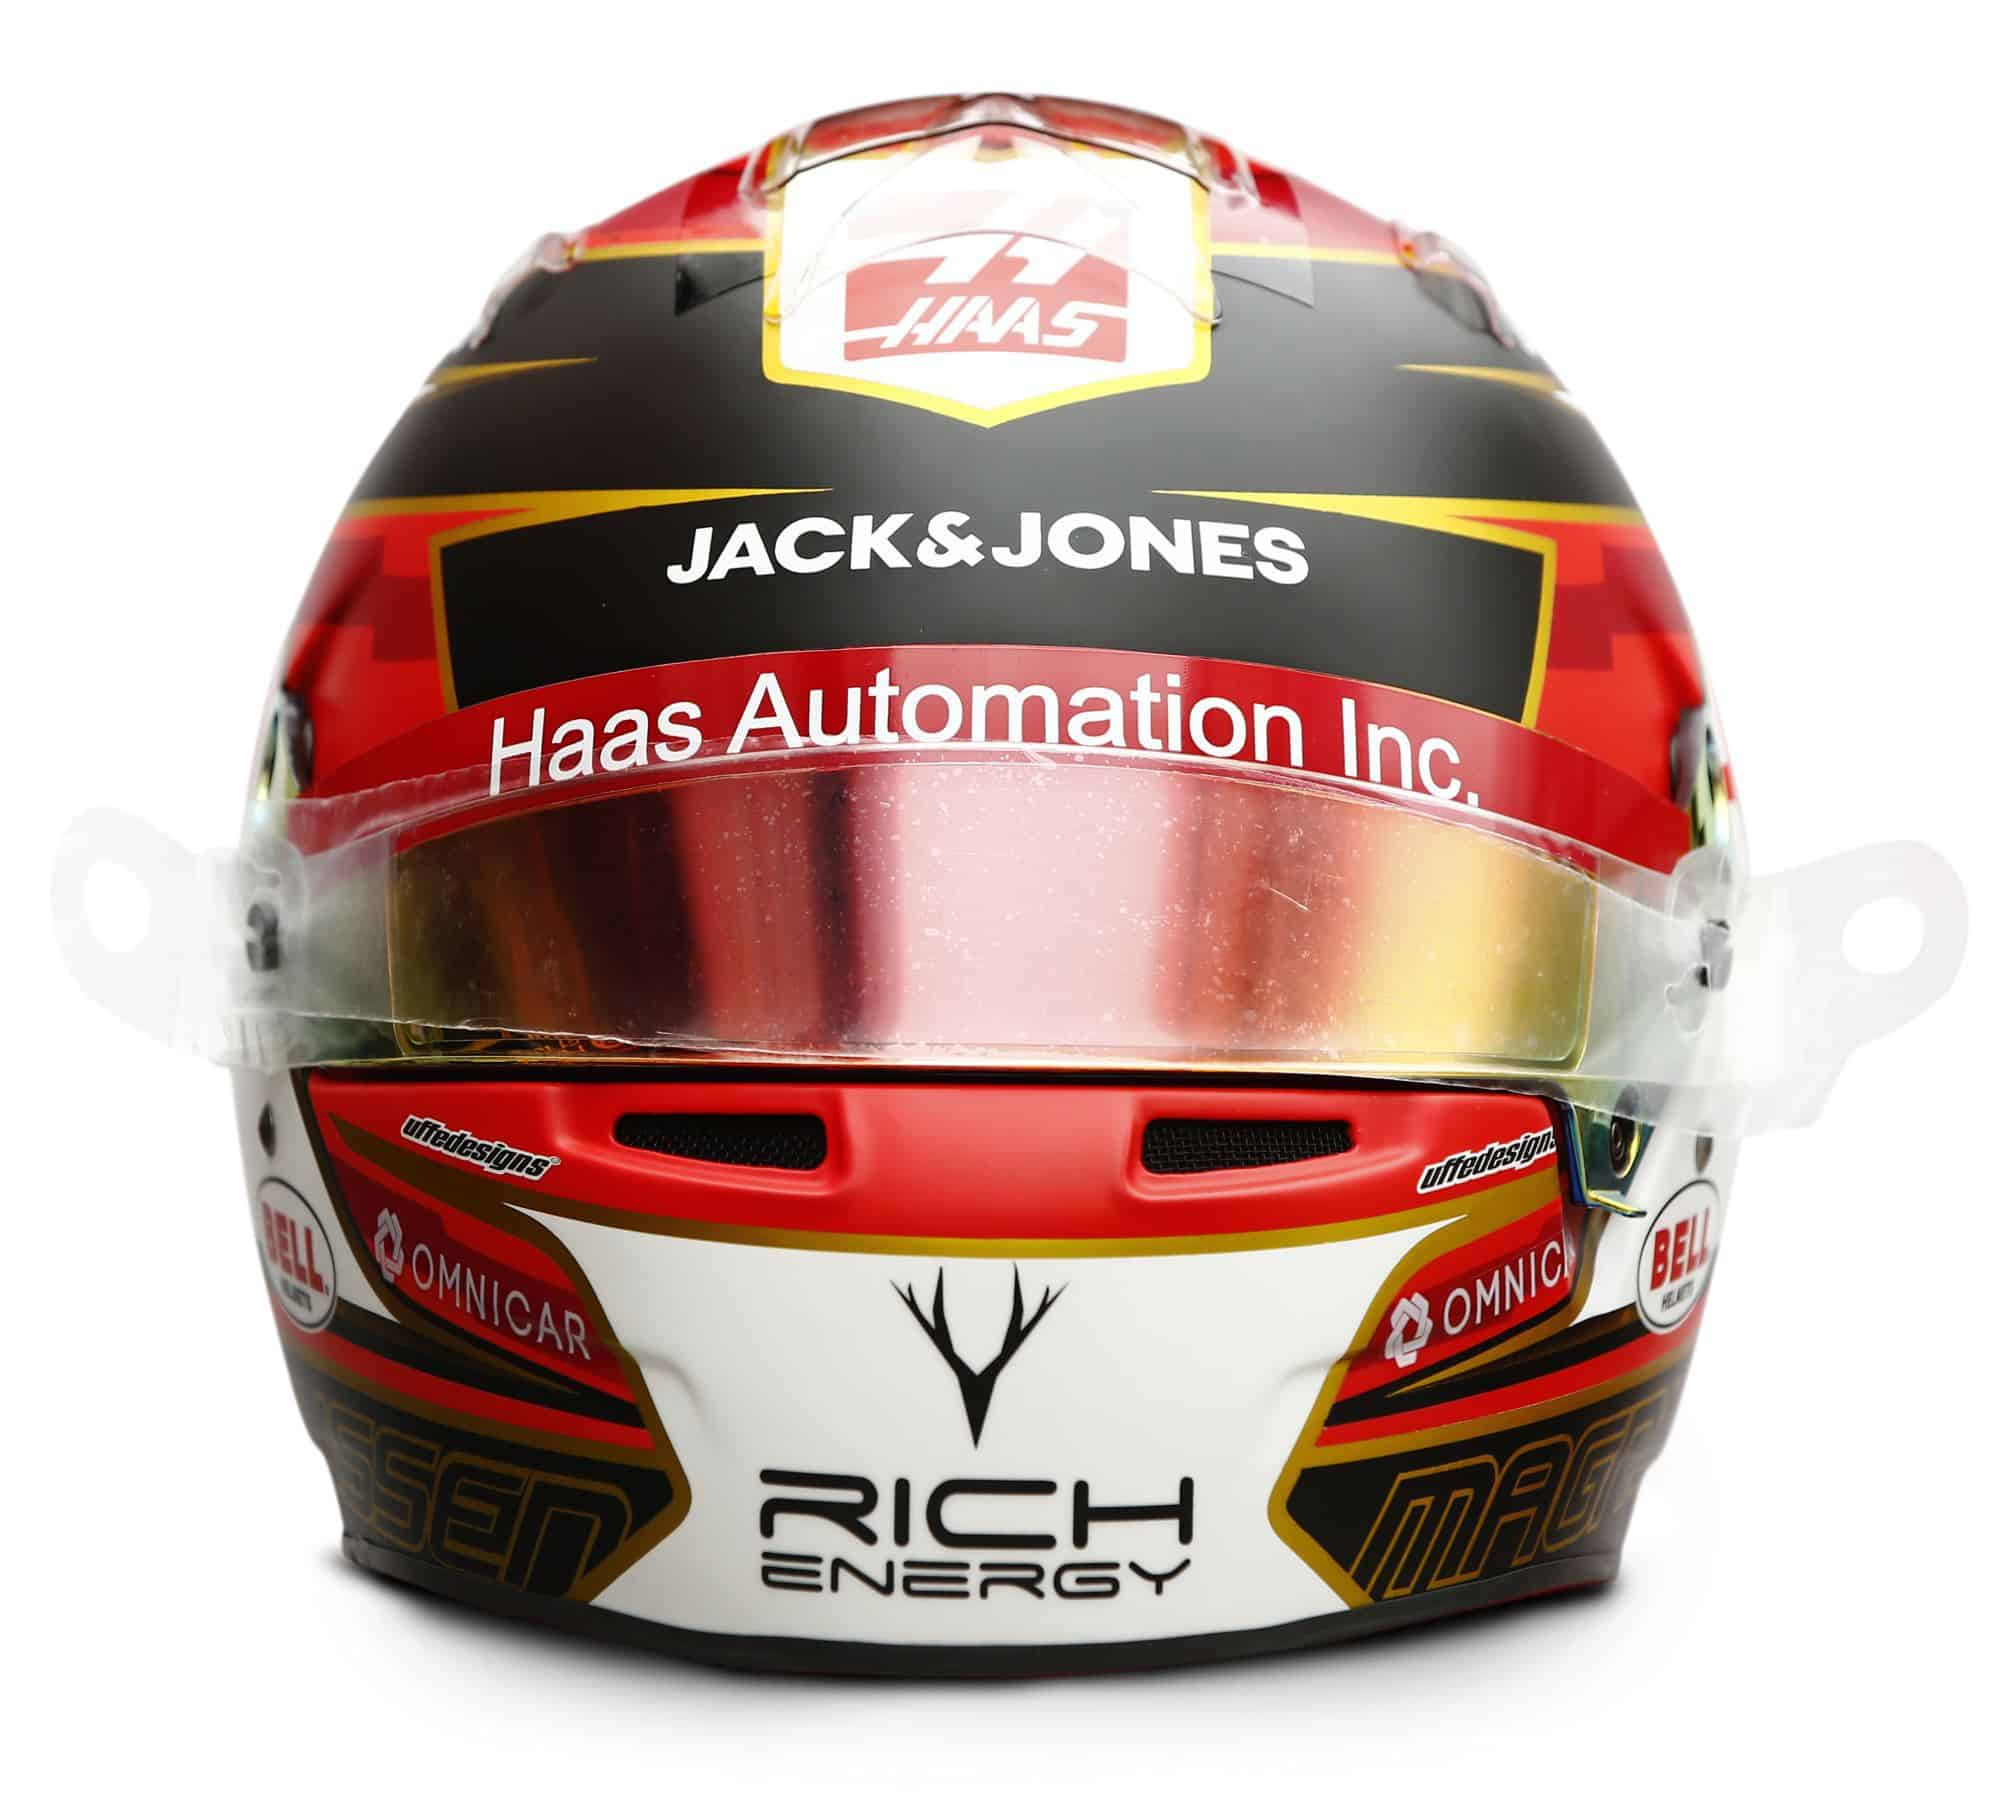 2019 Rich Energy Haas F1 Team Kevin Magnussen helmet front Photo Haas Edited by MAXF1net